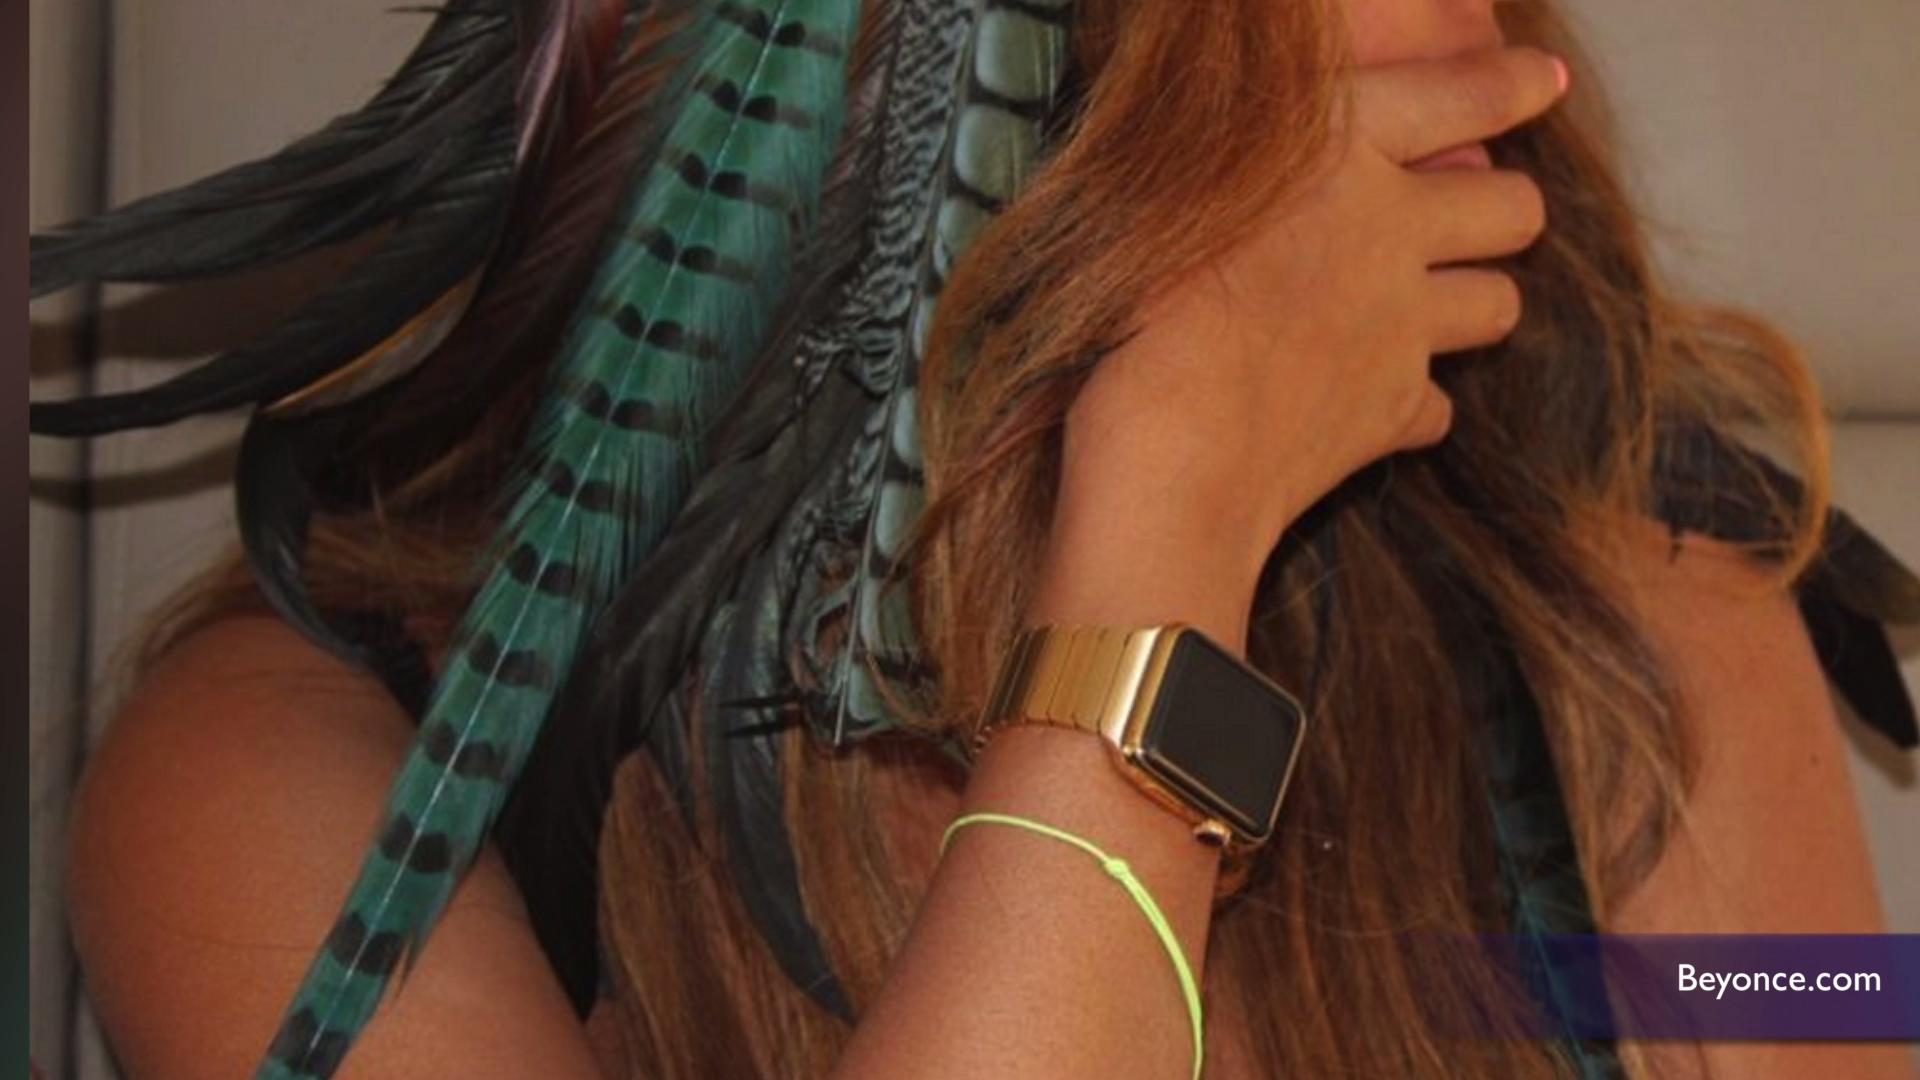 Beyoncé rocks exclusive gold band Apple Watch that's not for sale